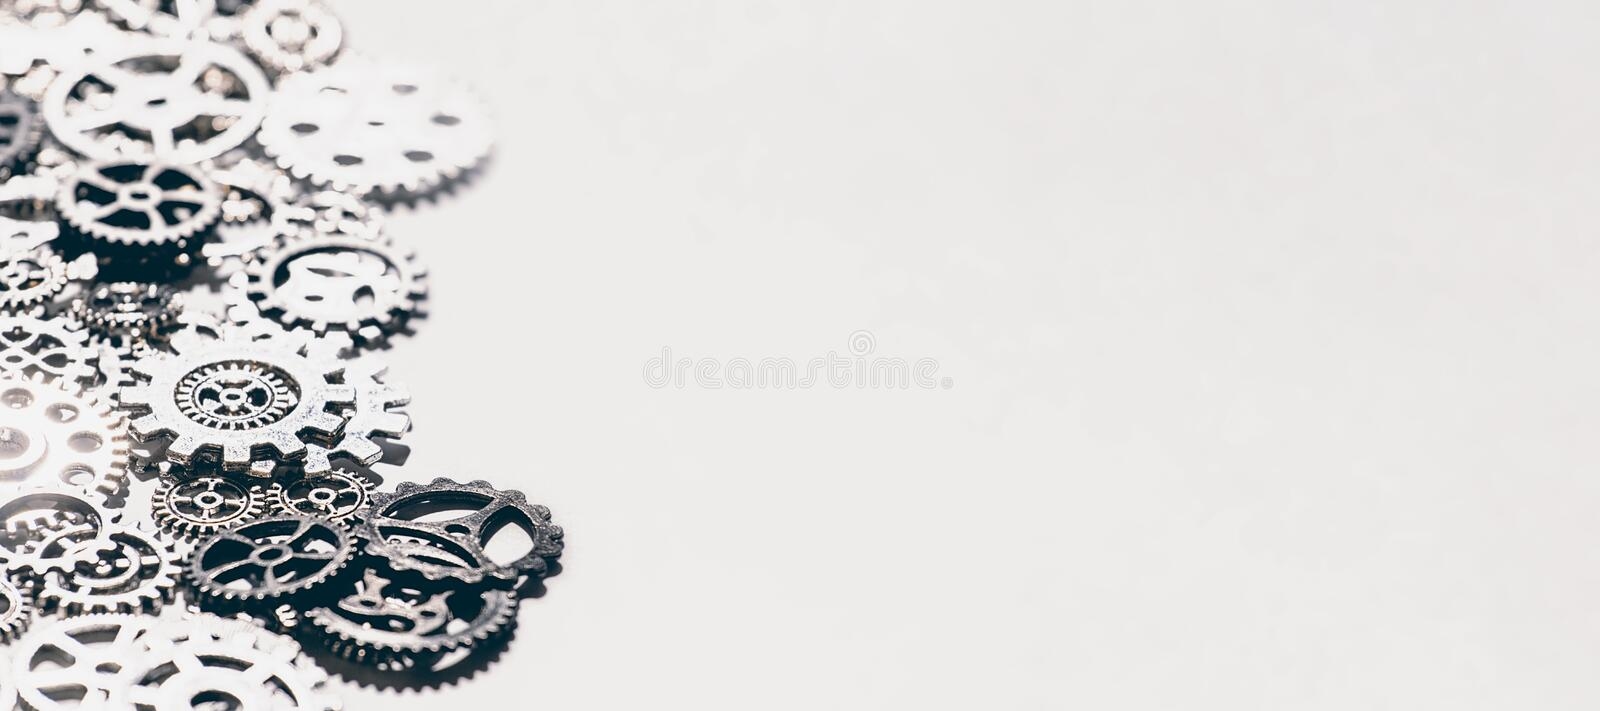 Metal gears and cogwheels Background. Gears and cogwheels stock photography